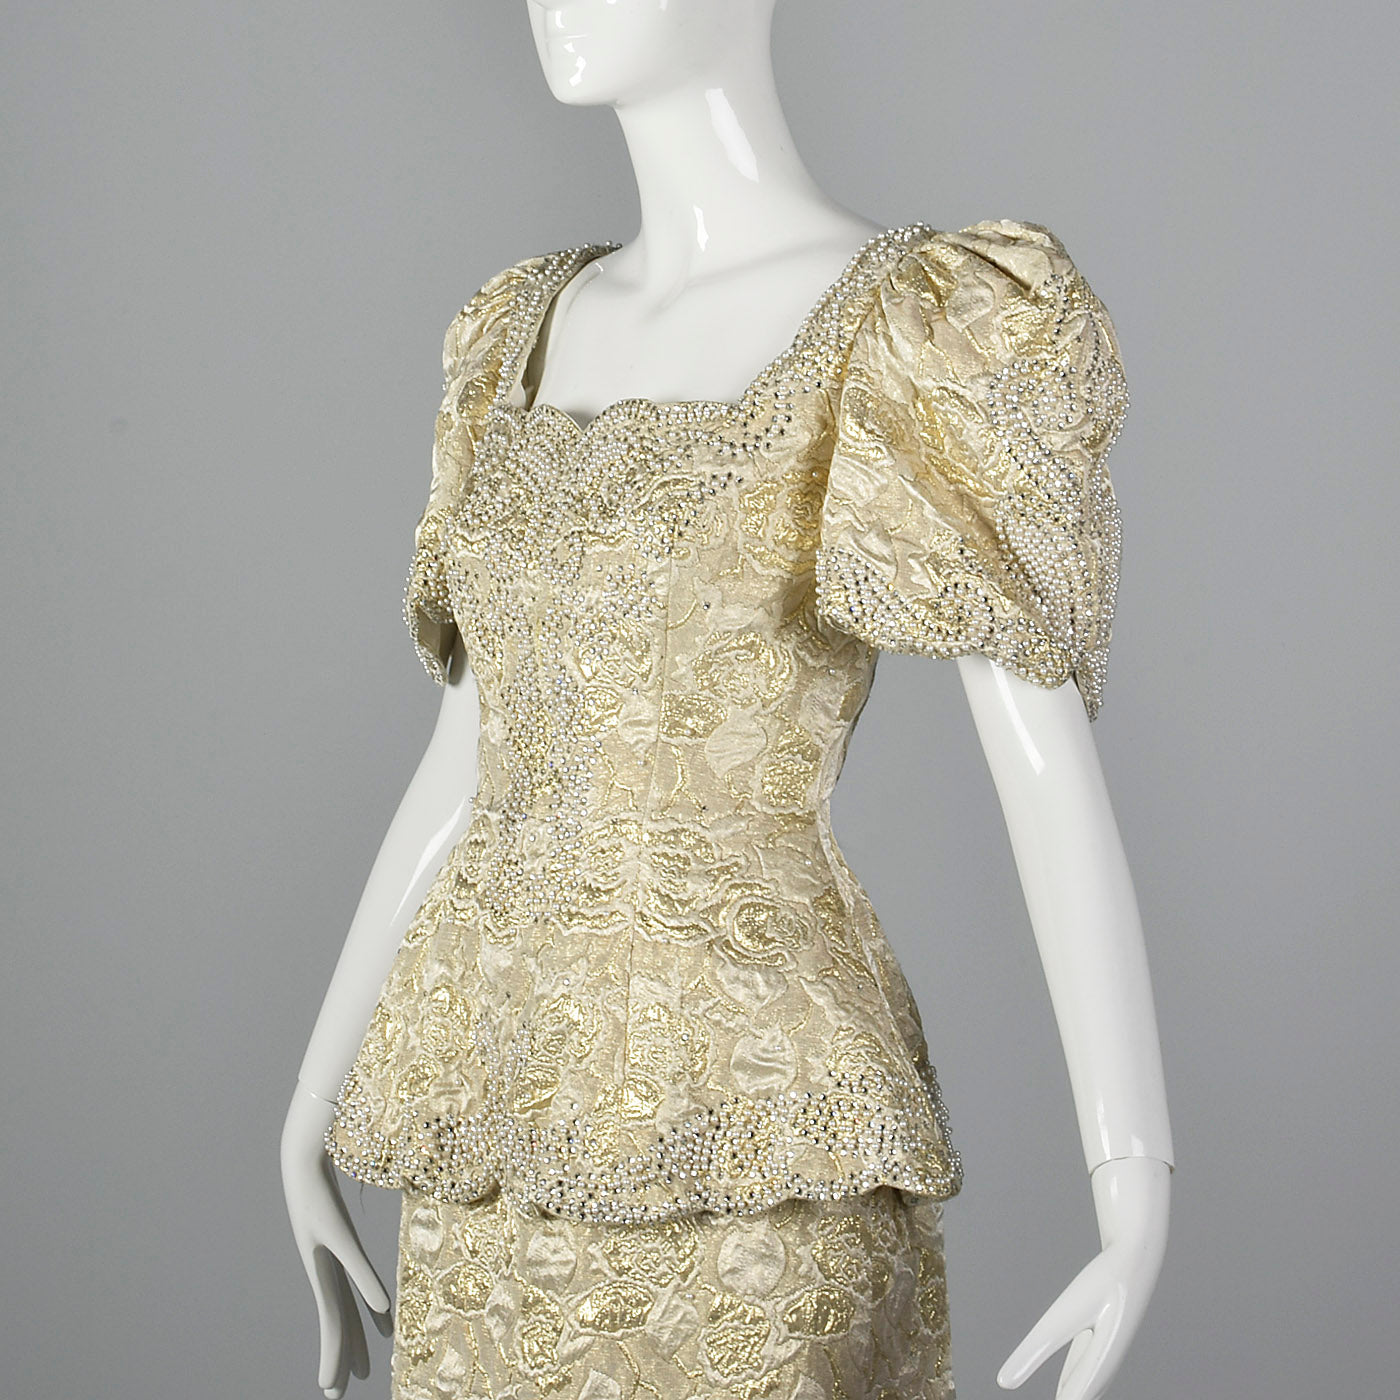 1980s Rose Taft Metallic Brocade Wedding Dress